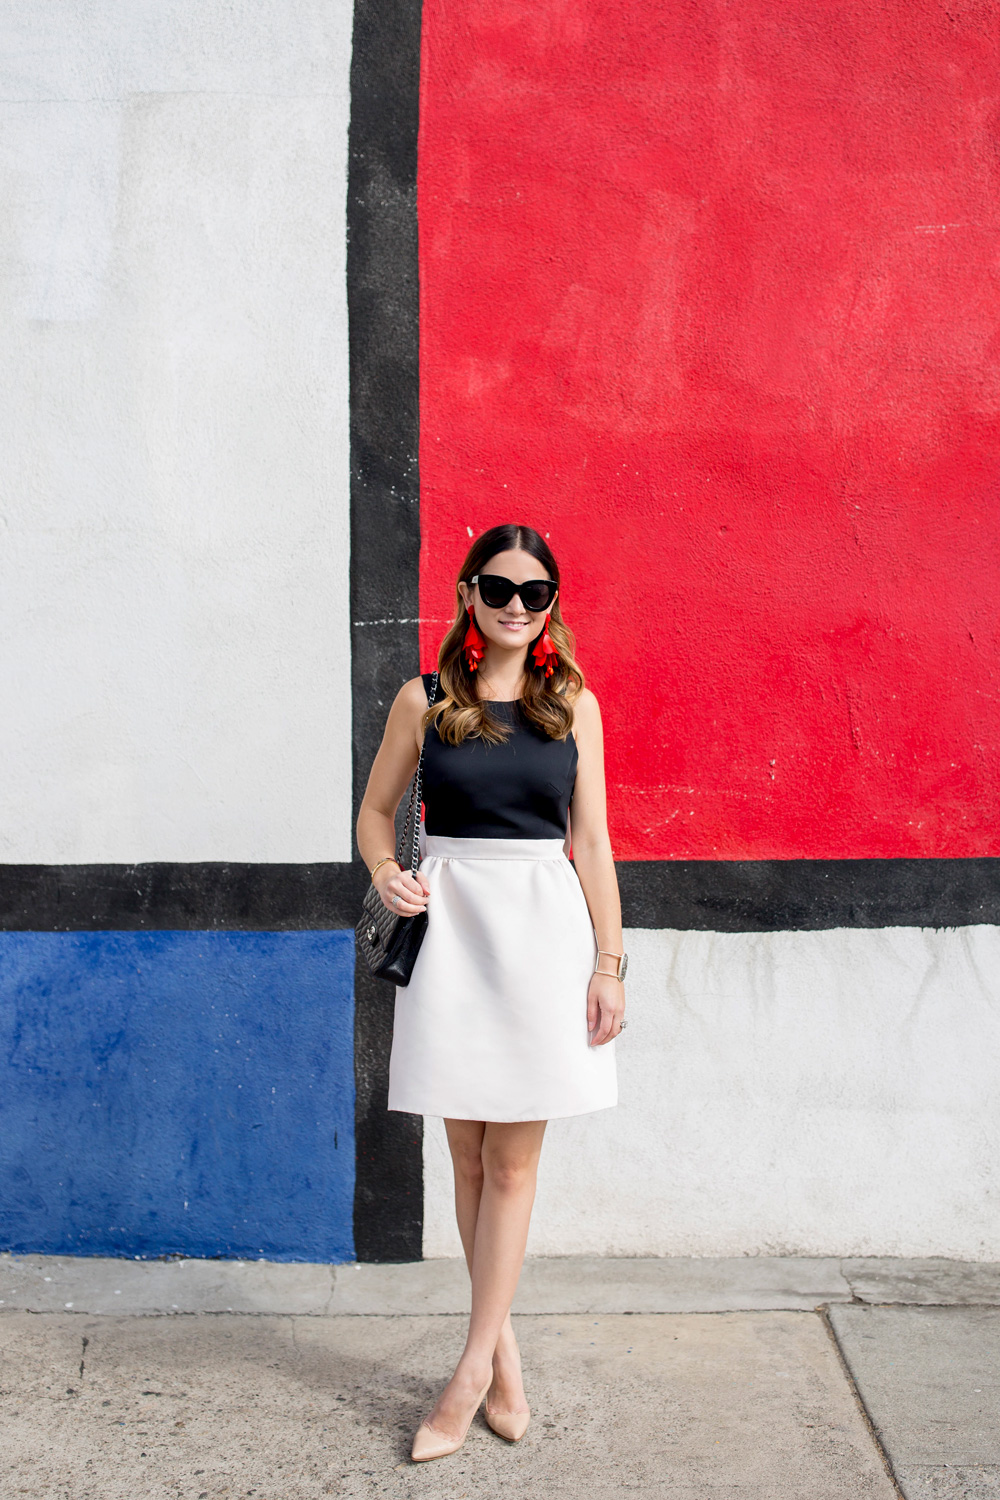 Jennifer Lake Style Charade in a black and white Kate Spade bow dress and a red Oscar de la Renta floral earrings at a colorful Mondrian wall mural in Los Angeles